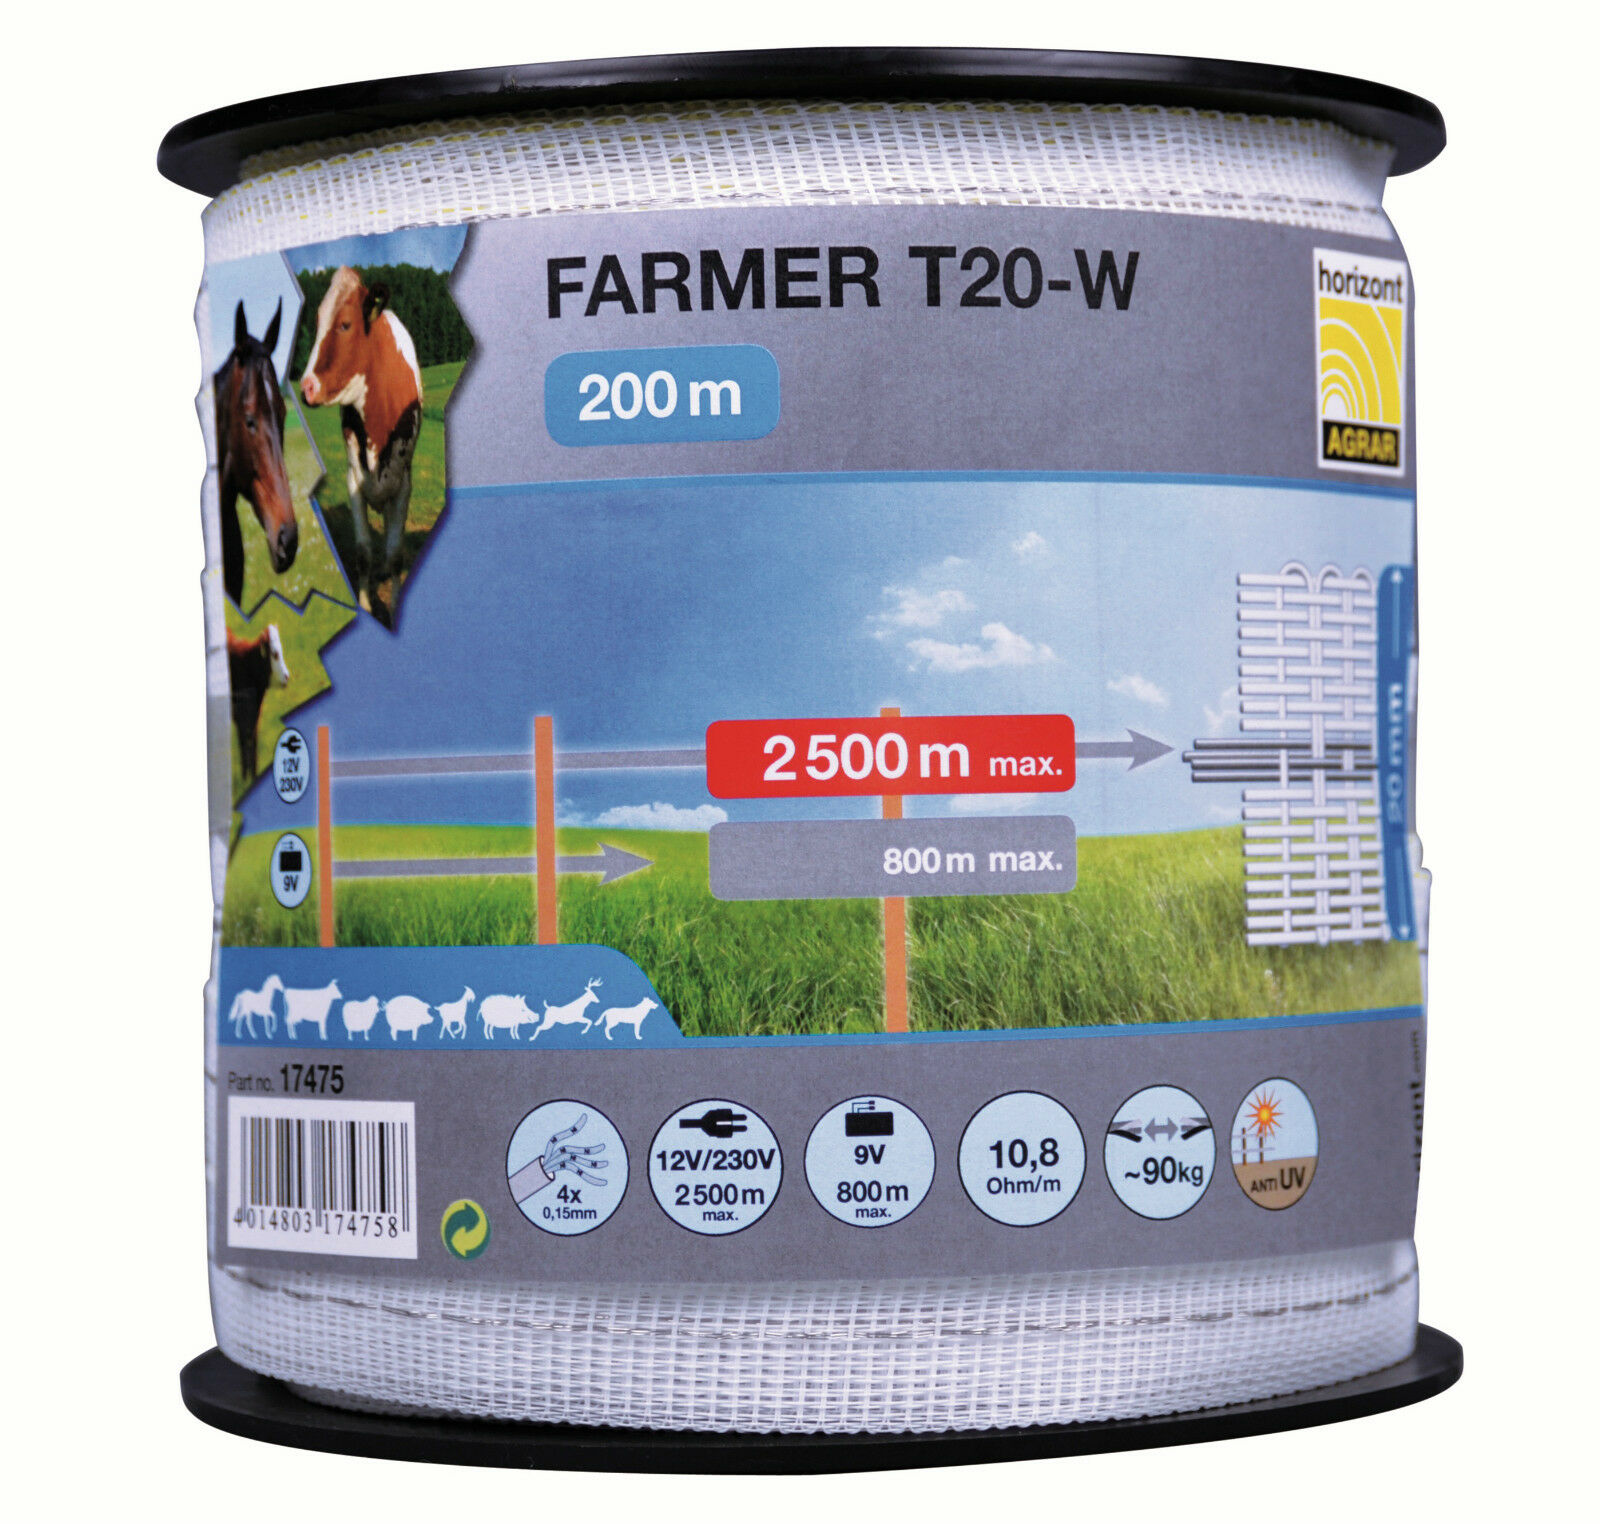 1000m (5 x 200m spools) of 'Farmer' 20mm electric fence tape + FREE connectors